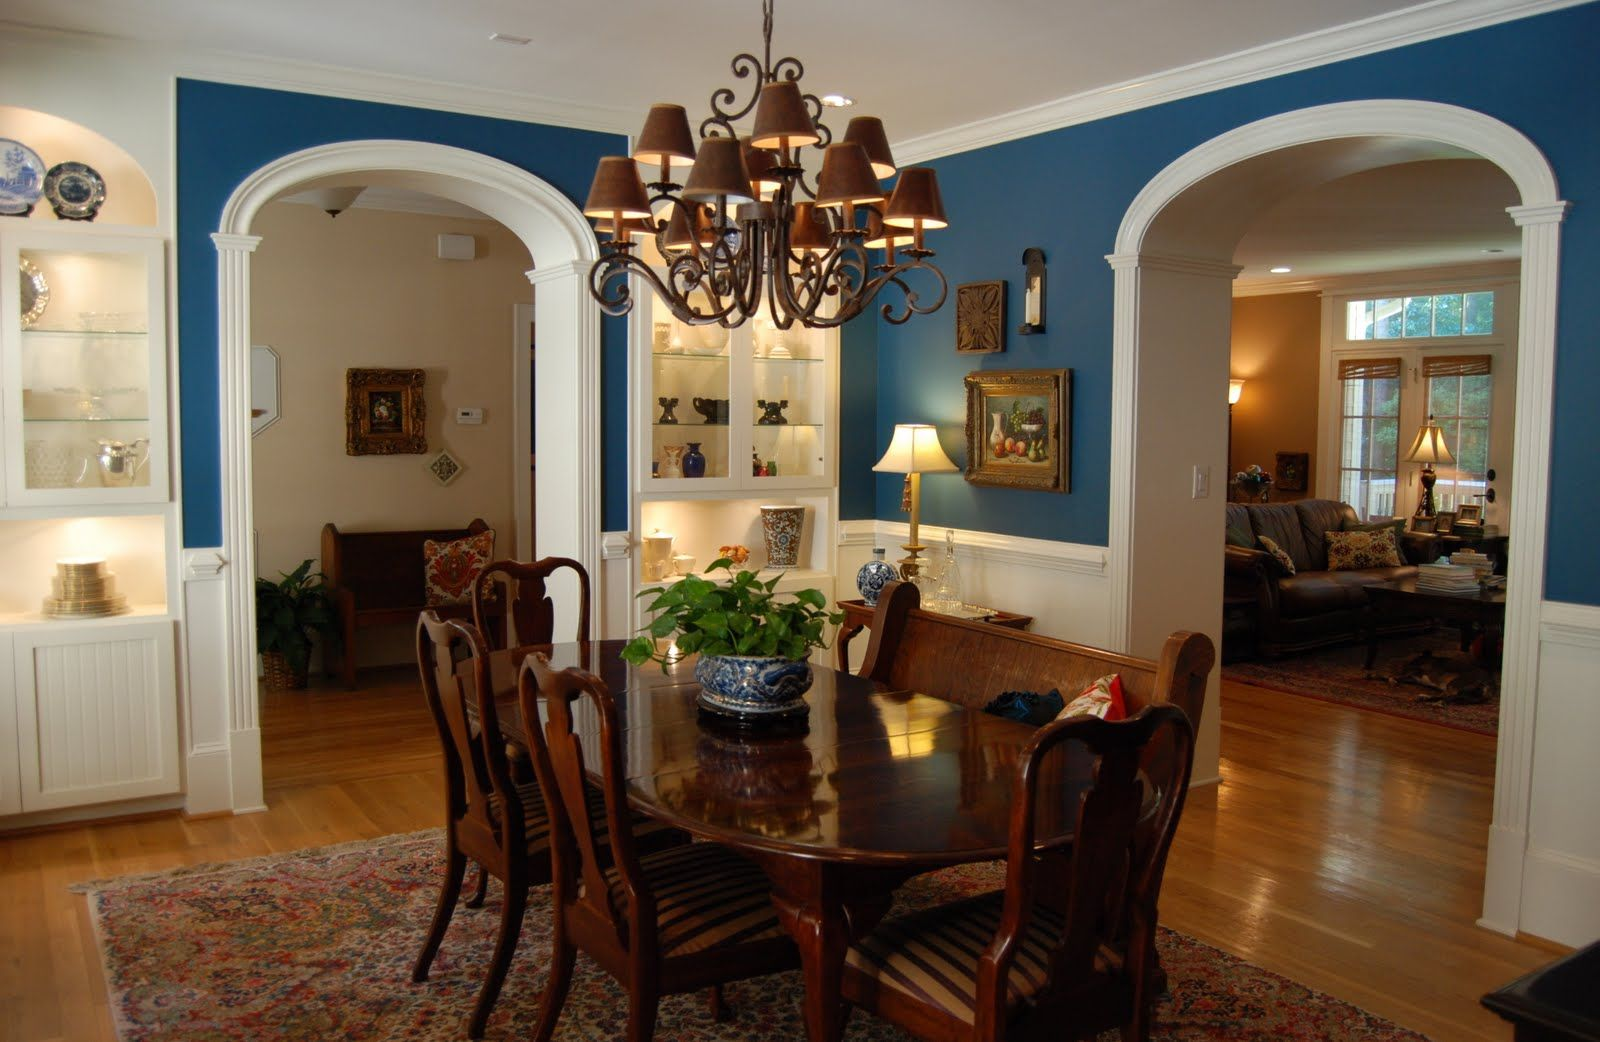 Good Blue And Yellow Paint Color Schemes For The Dining Room | Blue Paint In The  Dining